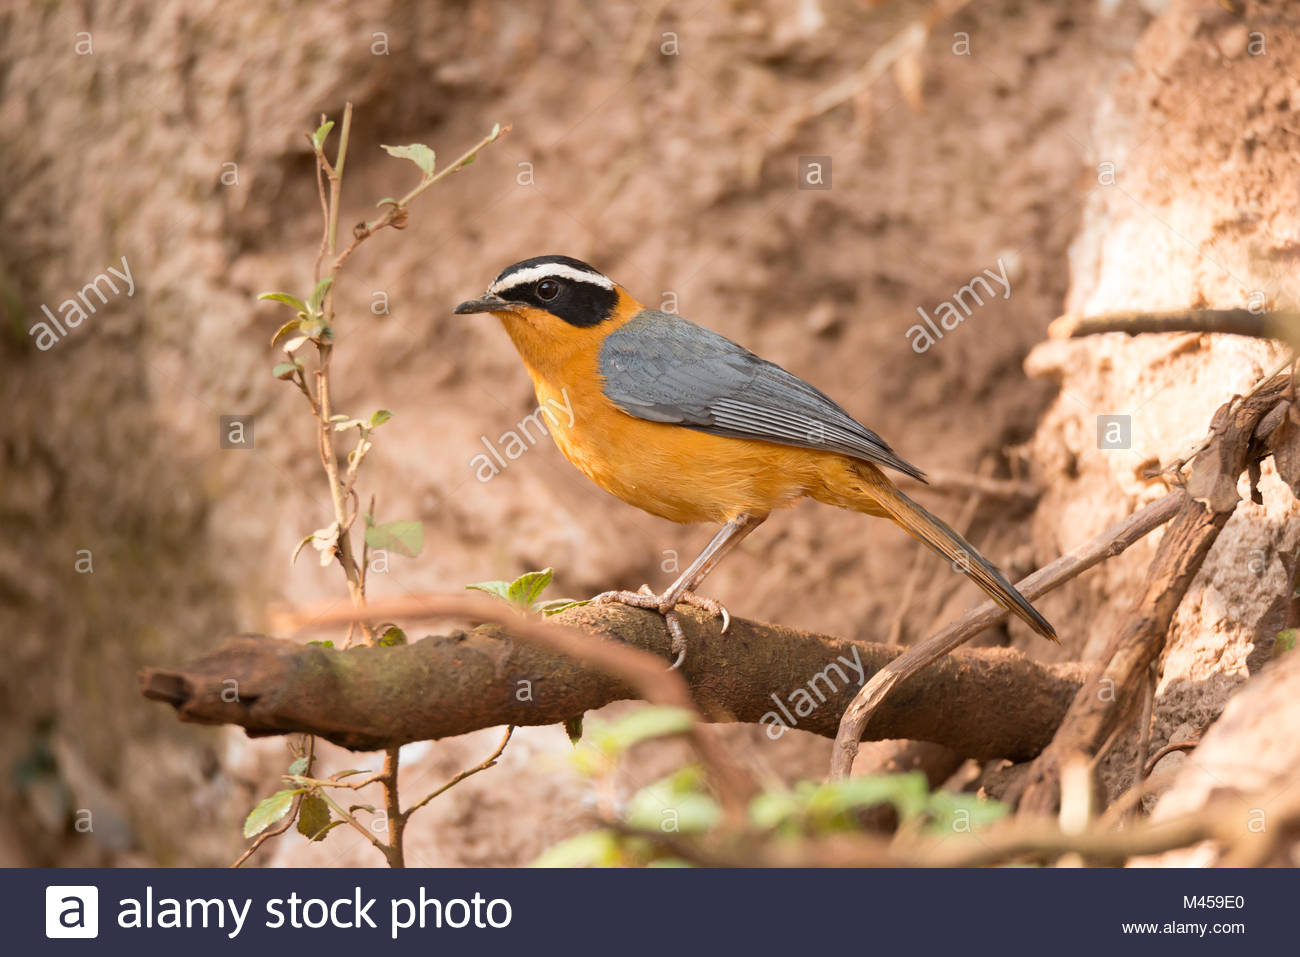 White-browed robin chat on branch beside bank - Stock Image